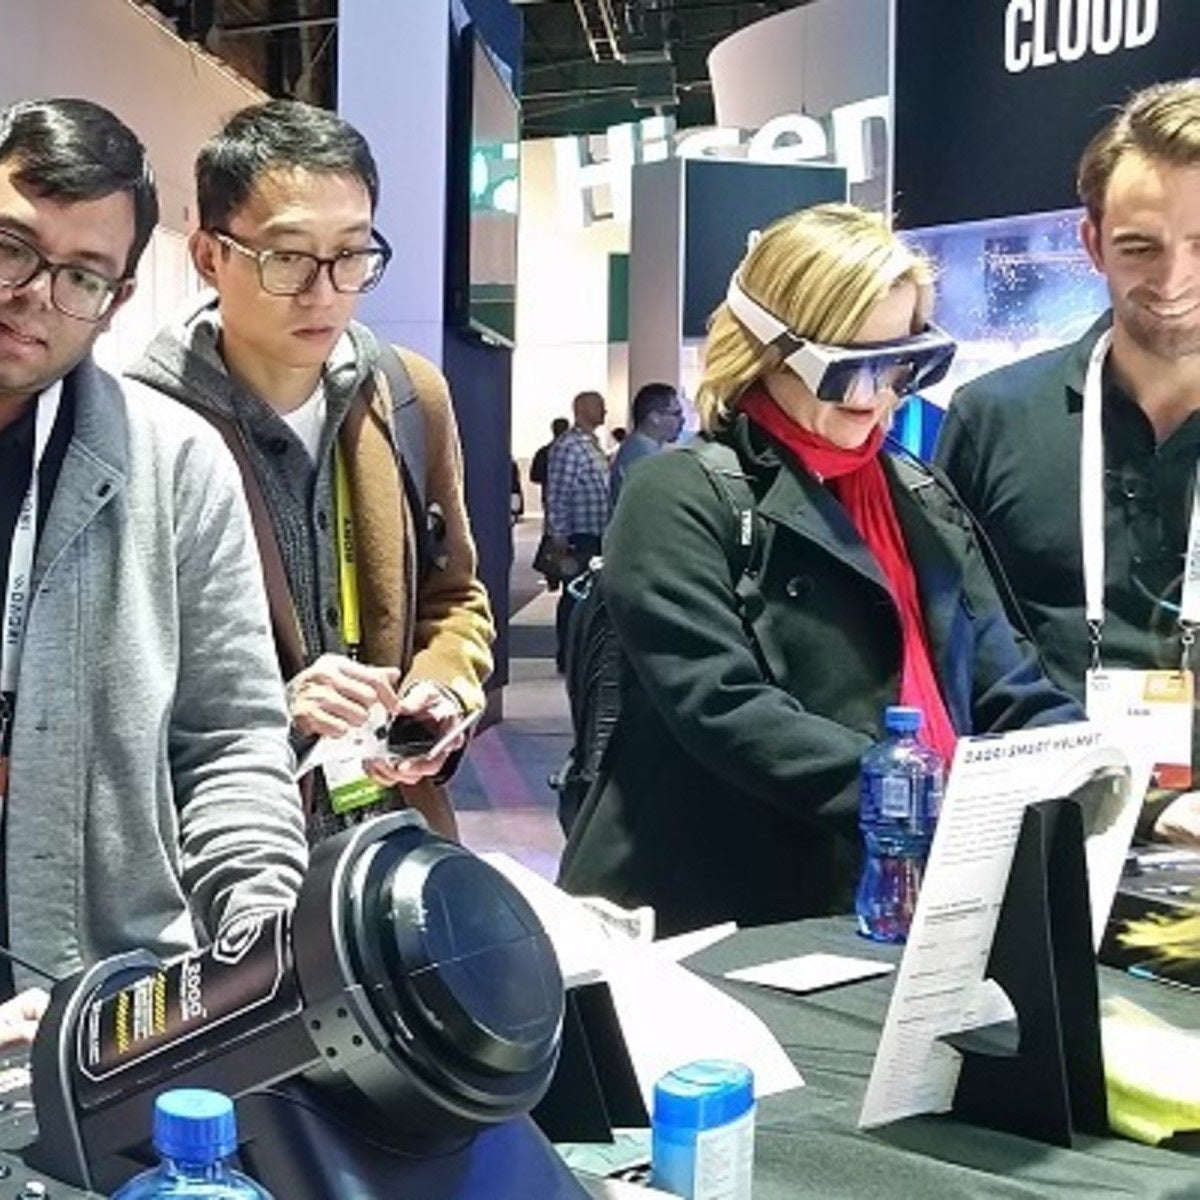 wearable-technology-on-the-shop-floor-ces-2017.jpg